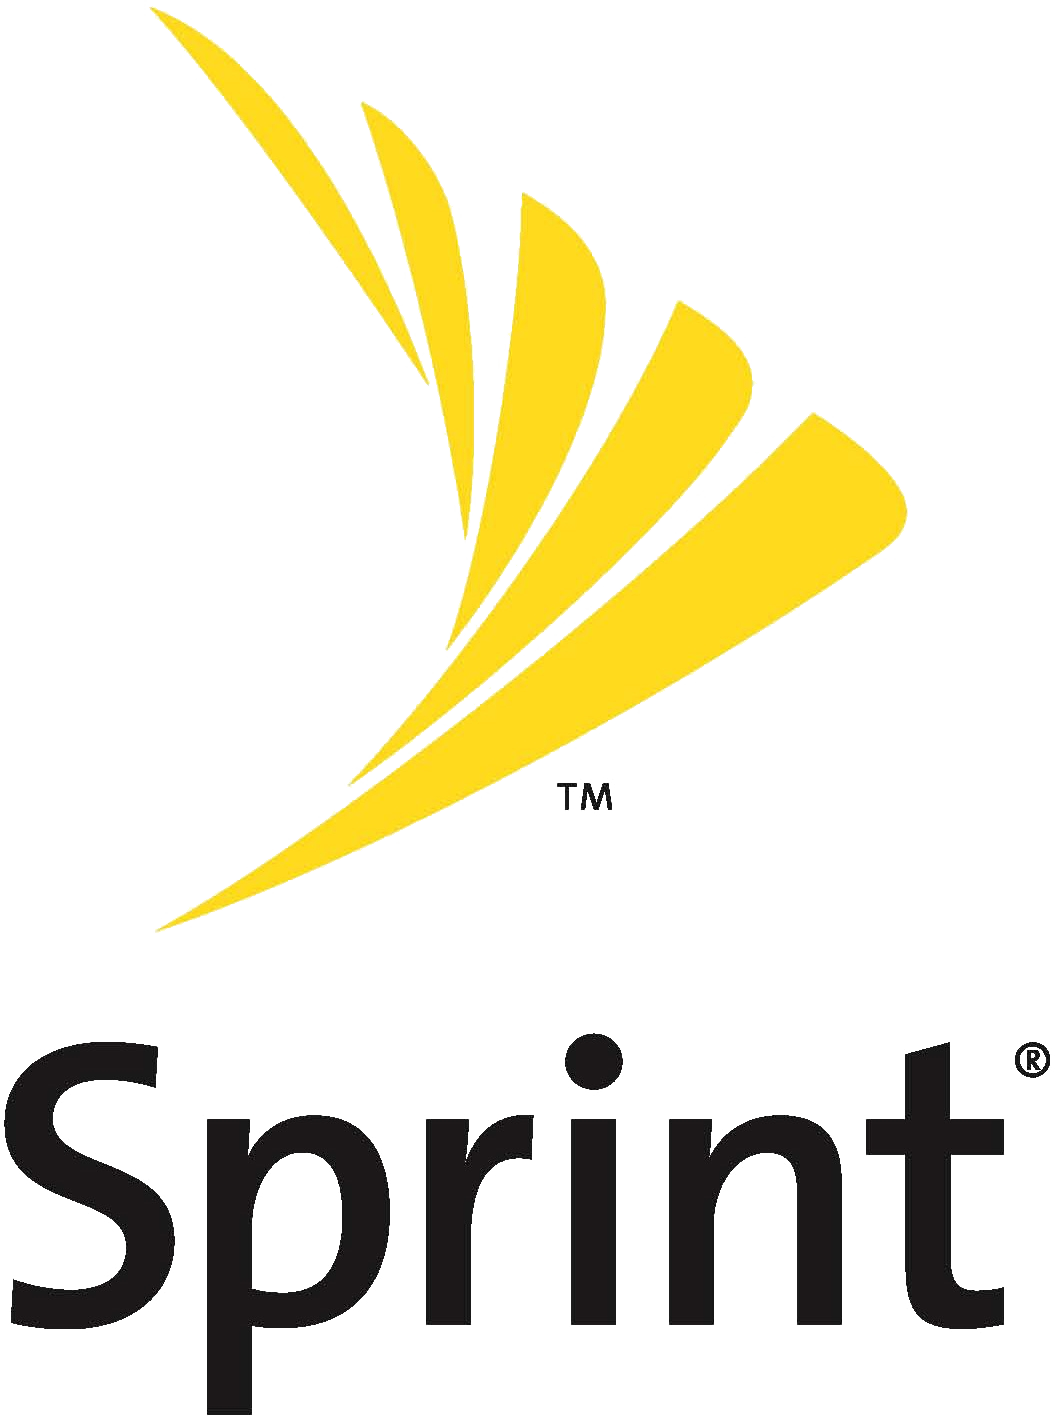 Sprint Looking for Cash, Possibly to Buy MetroPCS